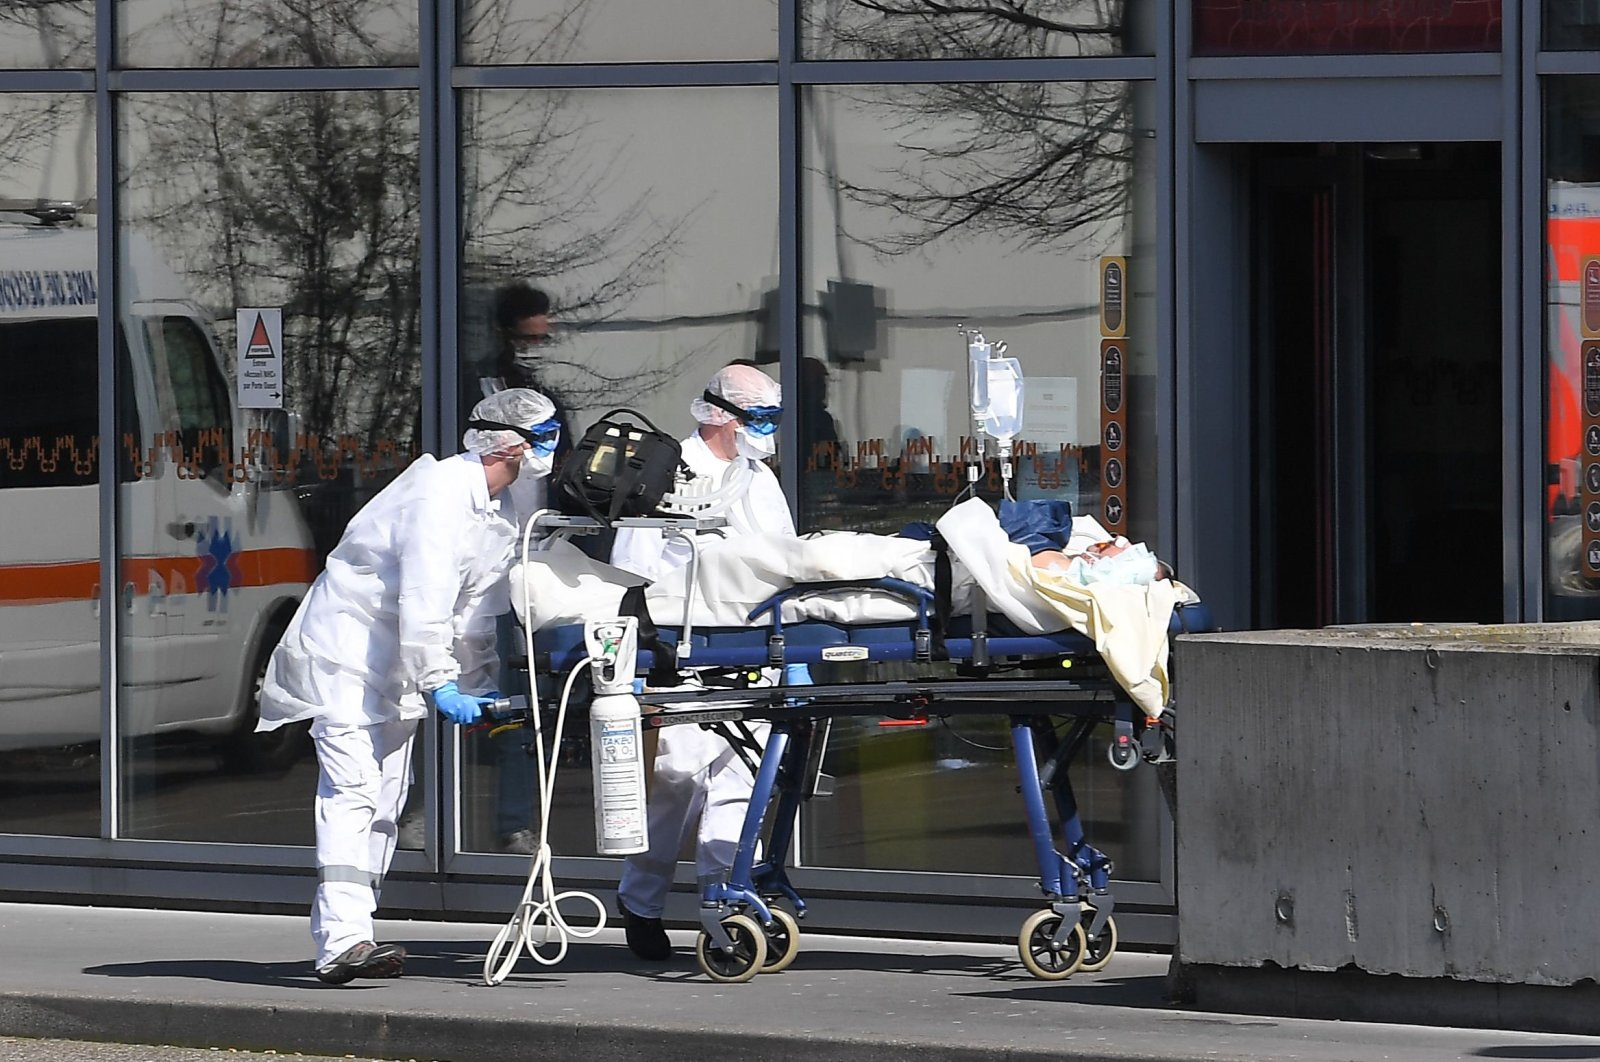 A patient under respiratory assistance is escorted to the Strasbourg University Hospital by members of the medical staff of the SAMU-SMUR emergency services, Strasbourg, March 16, 2020. (AFP Photo)